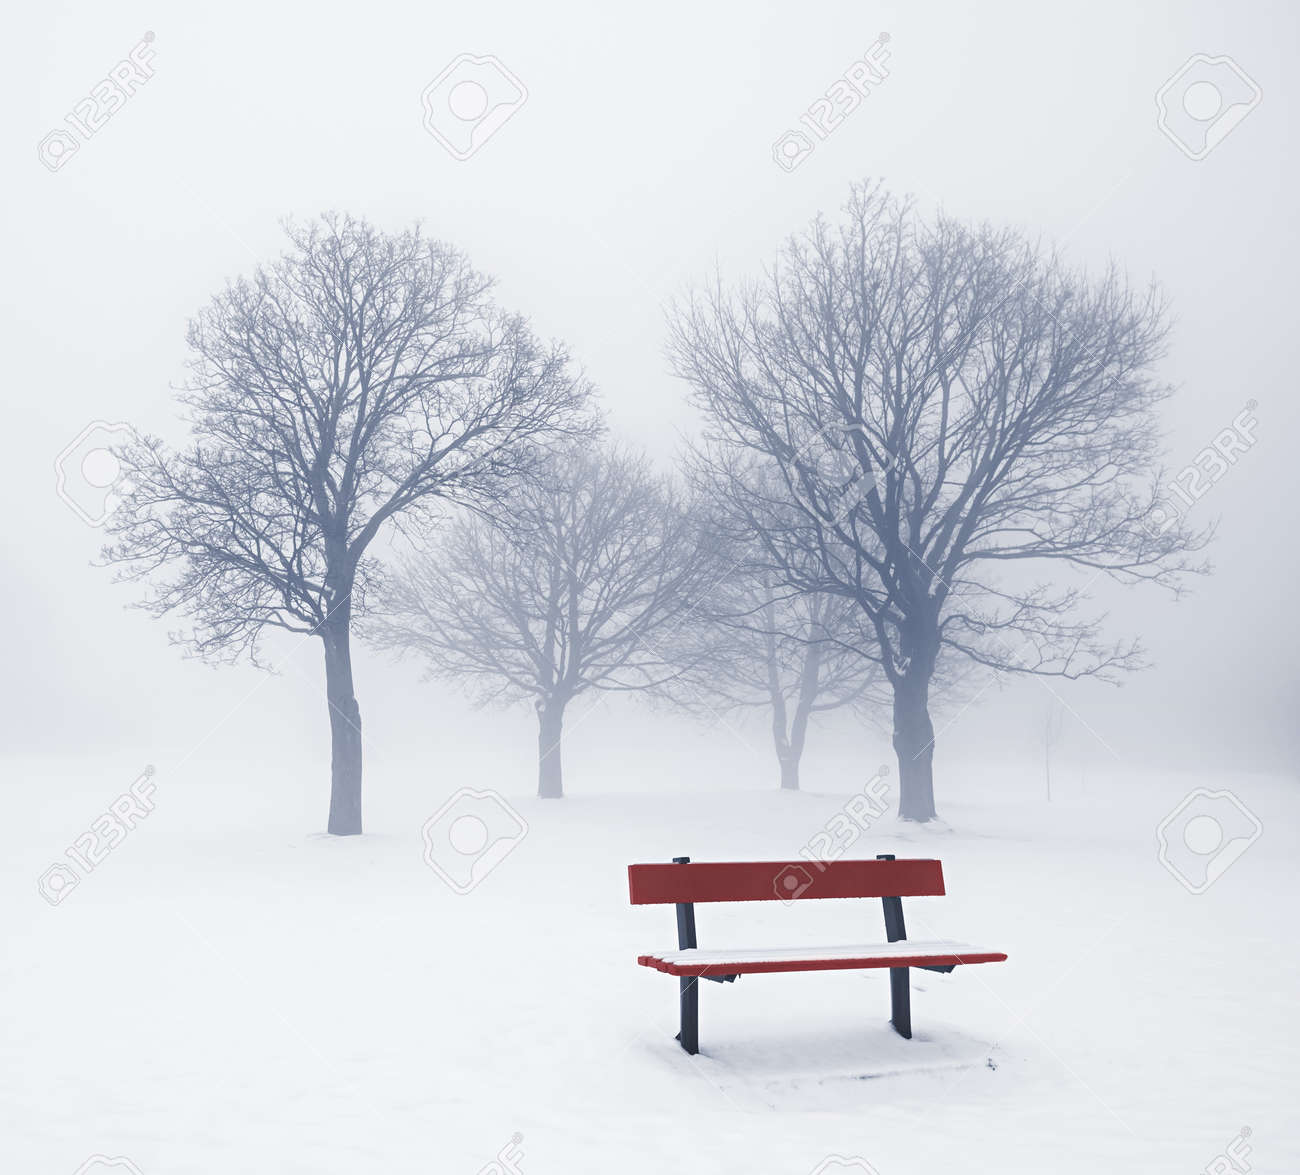 Foggy winter scene with leafless trees and red park bench Stock Photo - 17664237